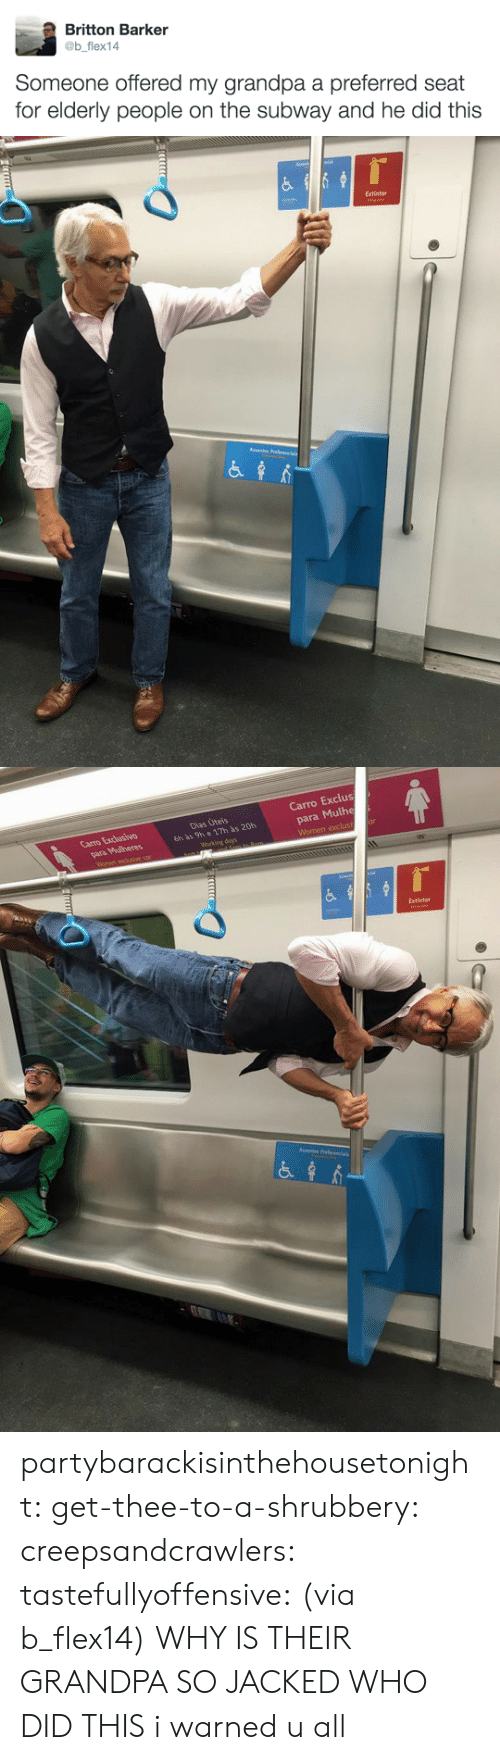 tastefullyoffensive: Britton Barker  @b flex14  Someone offered my grandpa a preferred seat  for elderly people on the subway and he did this   Extintor   Carro Exclus  para Mulhe  Carro Excusivo  Dias Úteis  6h às 9h e 17h às 20h  Extintor partybarackisinthehousetonight: get-thee-to-a-shrubbery:  creepsandcrawlers:  tastefullyoffensive:  (via b_flex14)  WHY IS THEIR GRANDPA SO JACKED WHO DID THIS    i warned u all